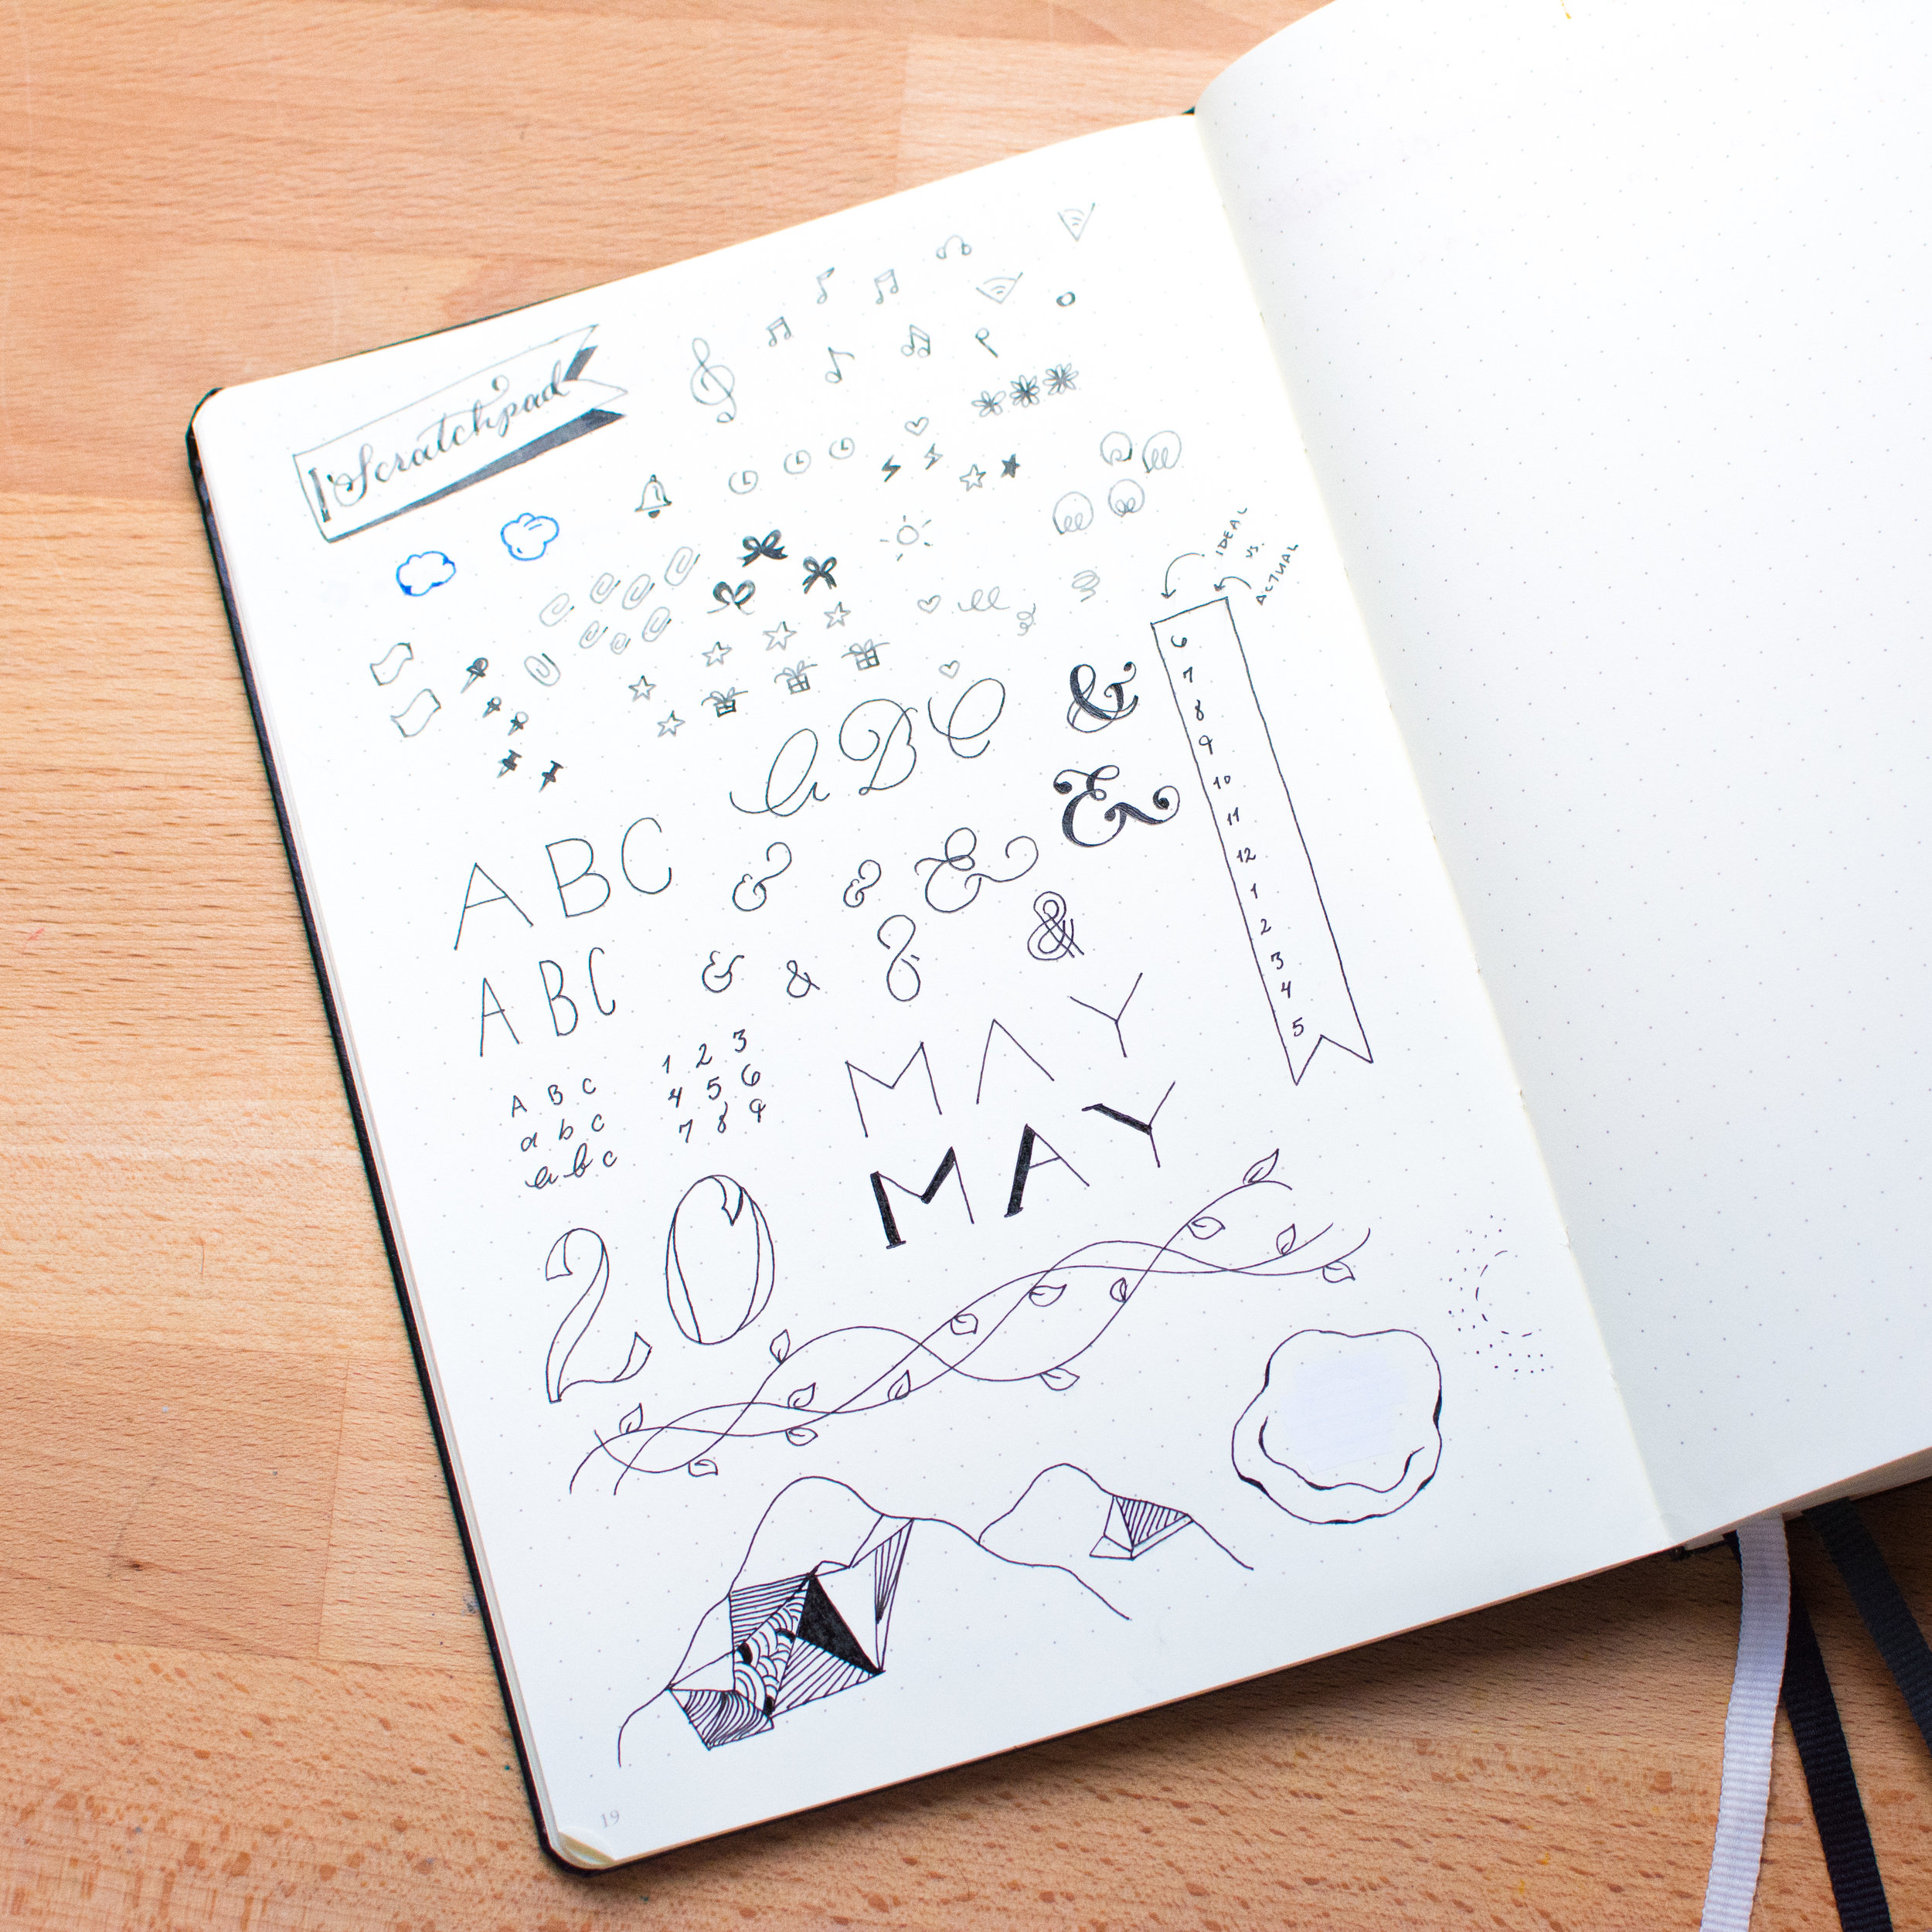 Add a scratchpad to your Bullet Journal to toy with ideas